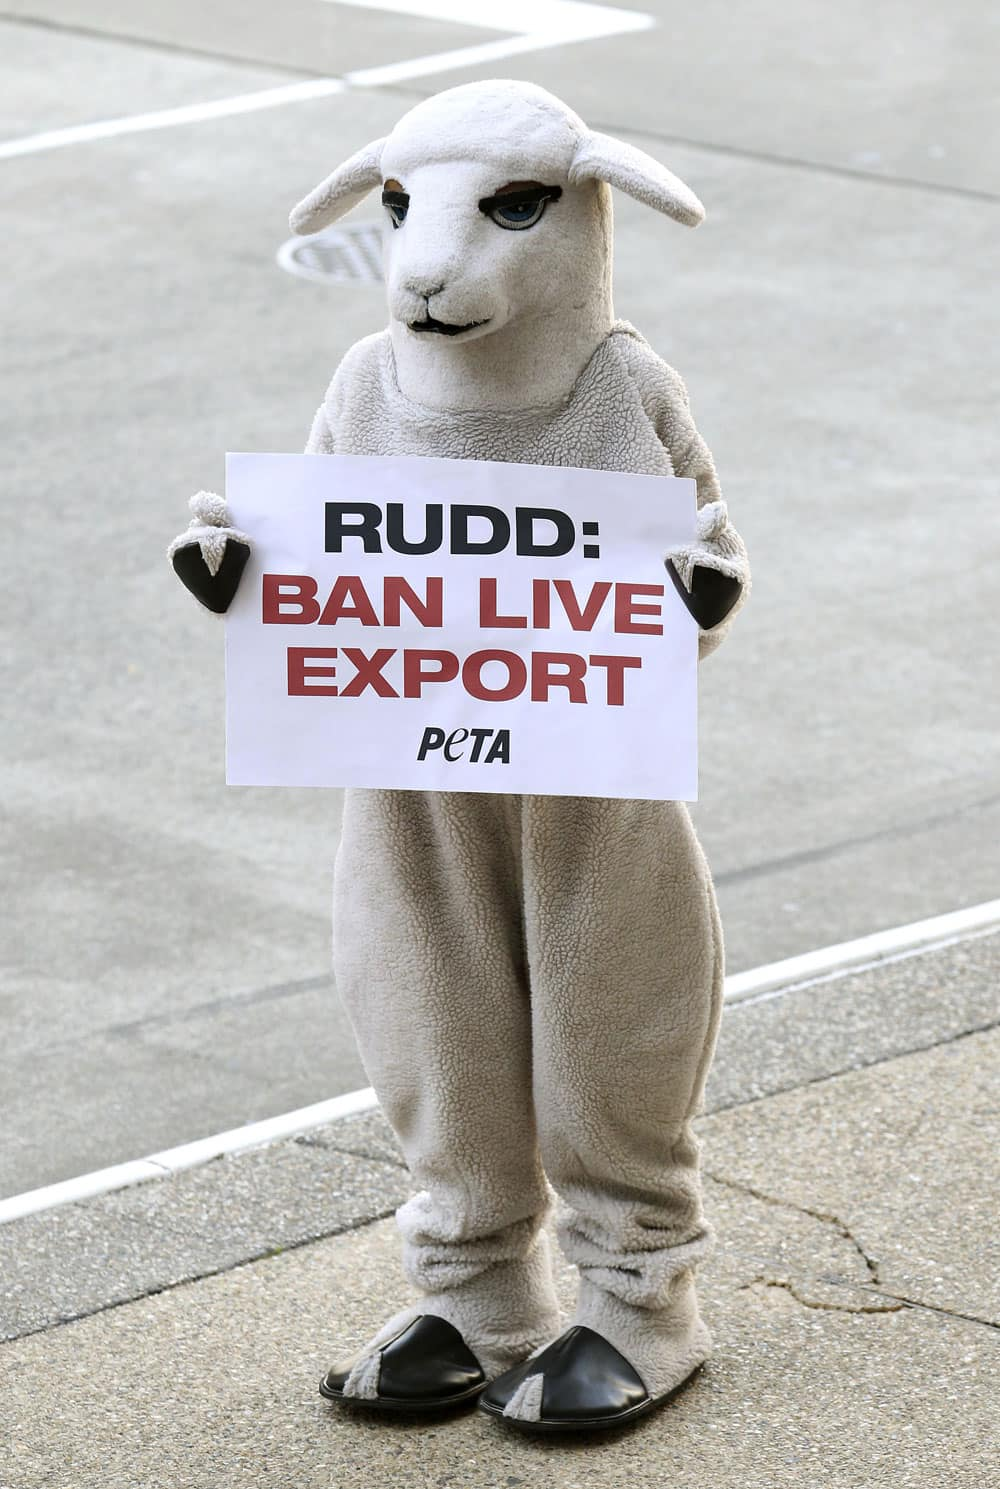 A member of PETA, People for the Ethical Treatment of Animals, protests outside the Brisbane Convention Centre during the Australian Labor Party`s campaign launch in Brisbane, Australia.